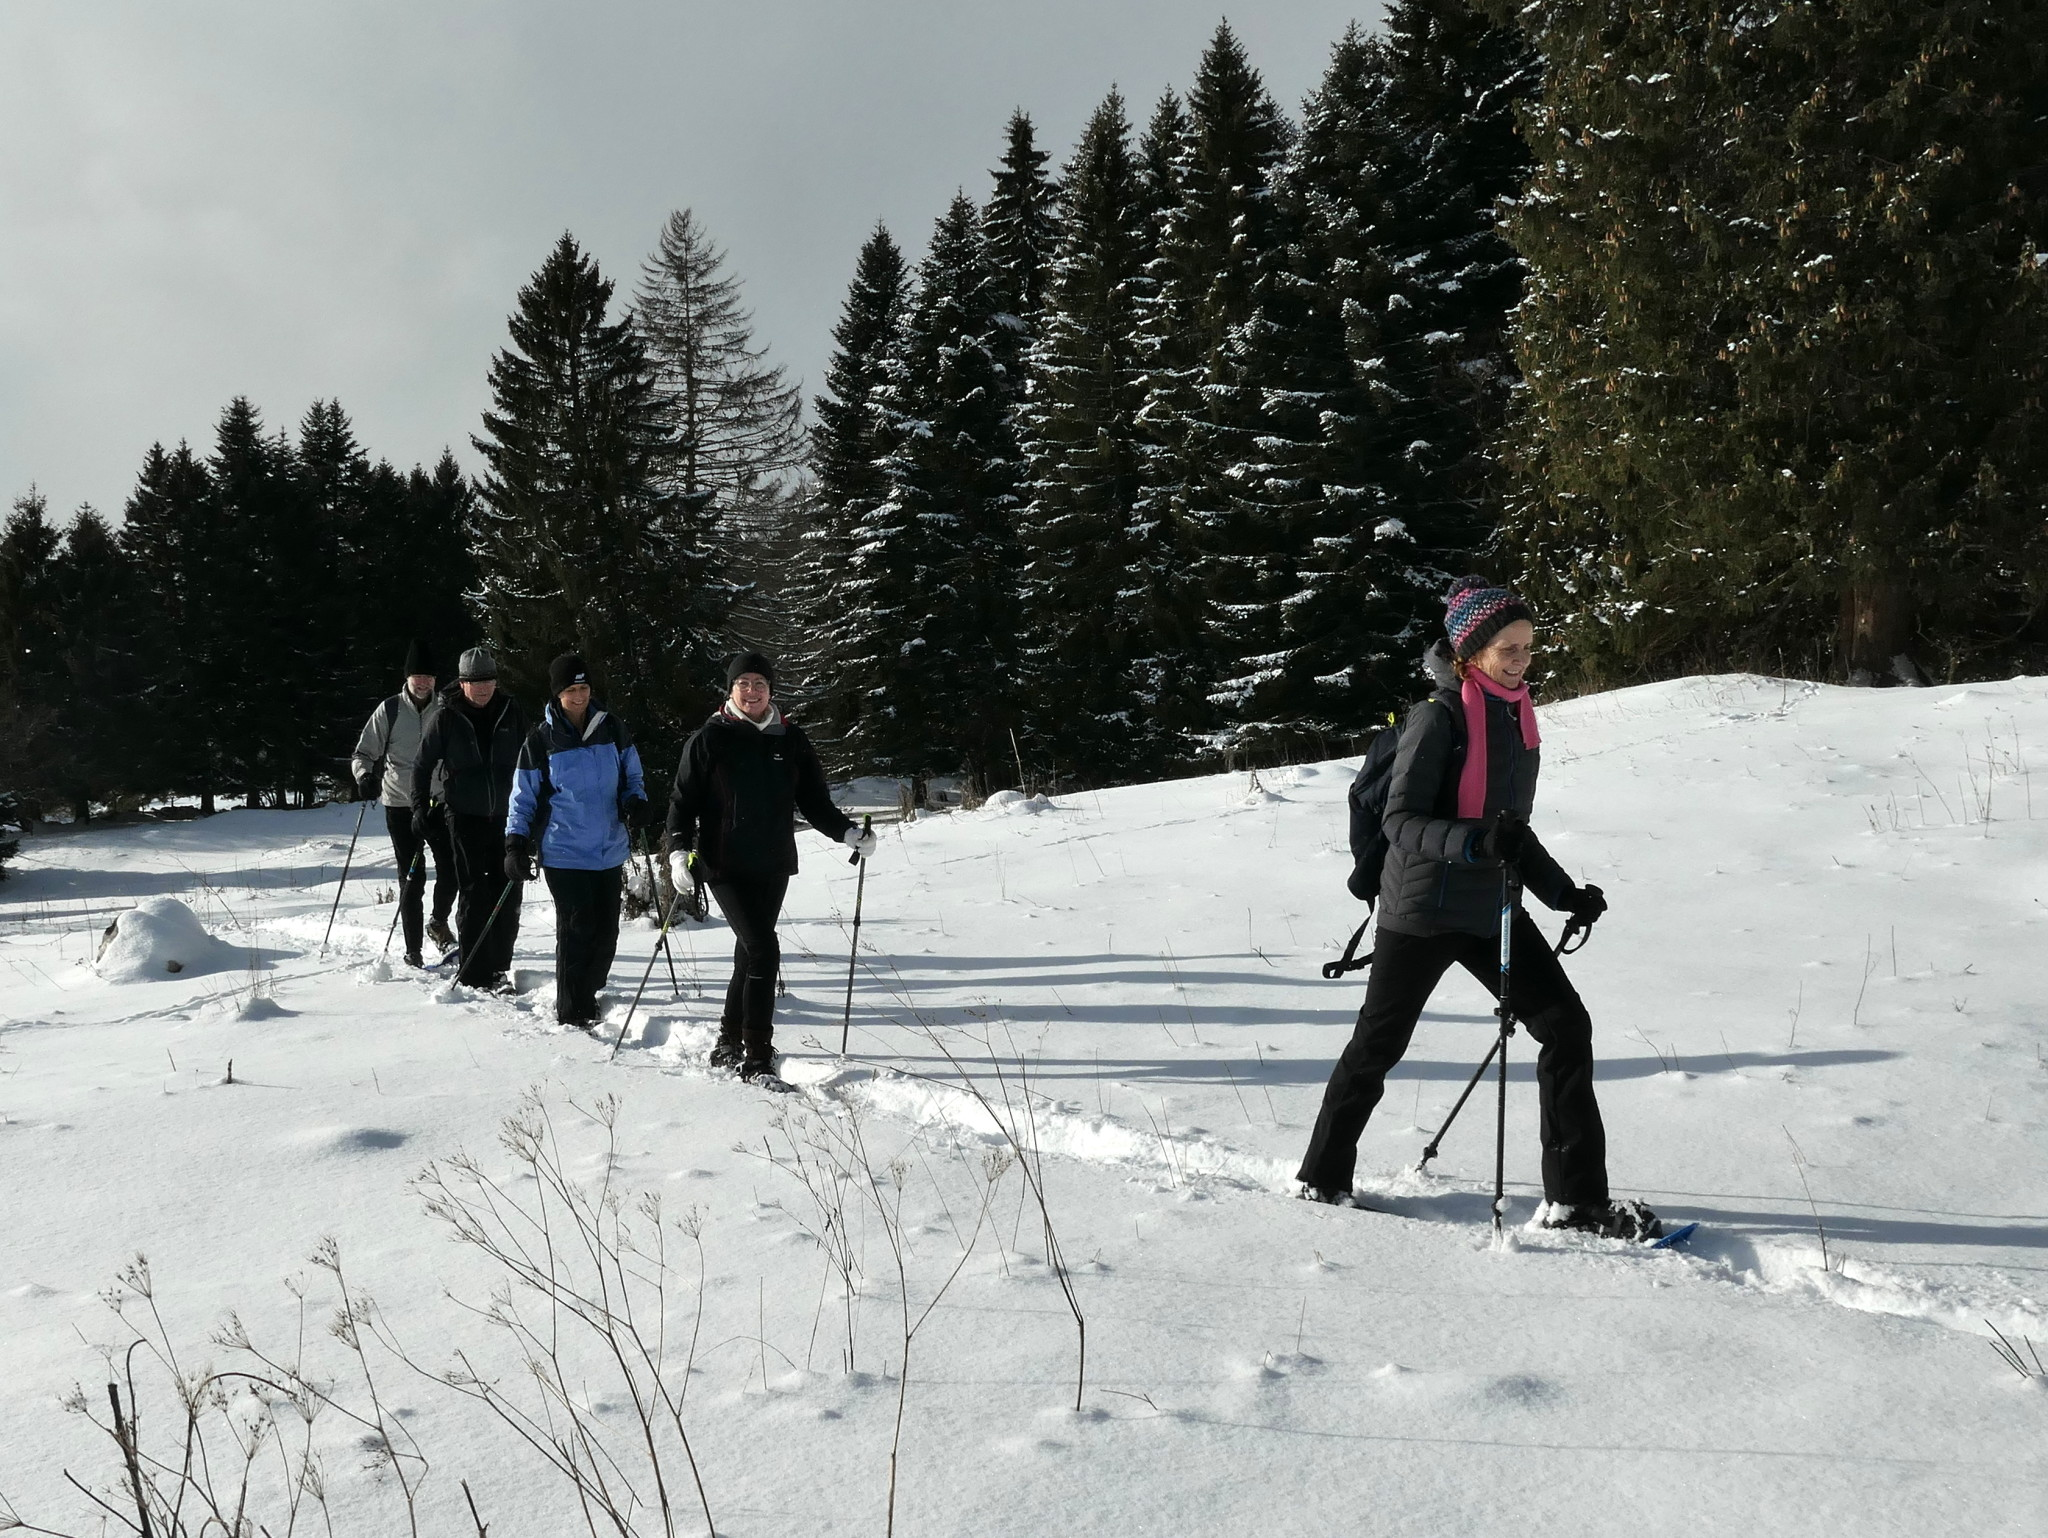 Snow-shoe introduction